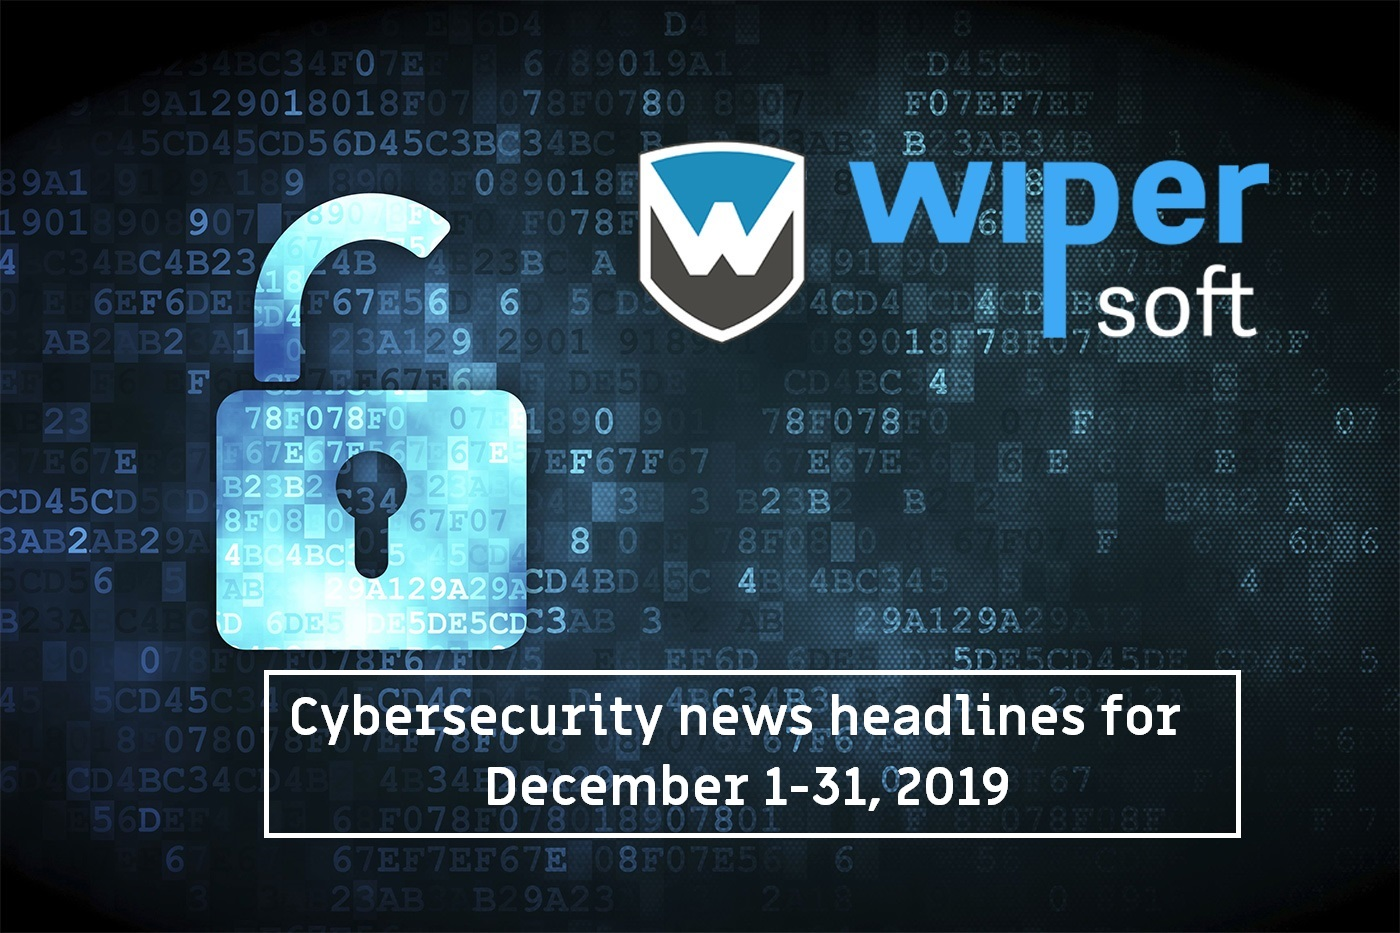 Cybersecurity news headlines for December 1-31, 2019